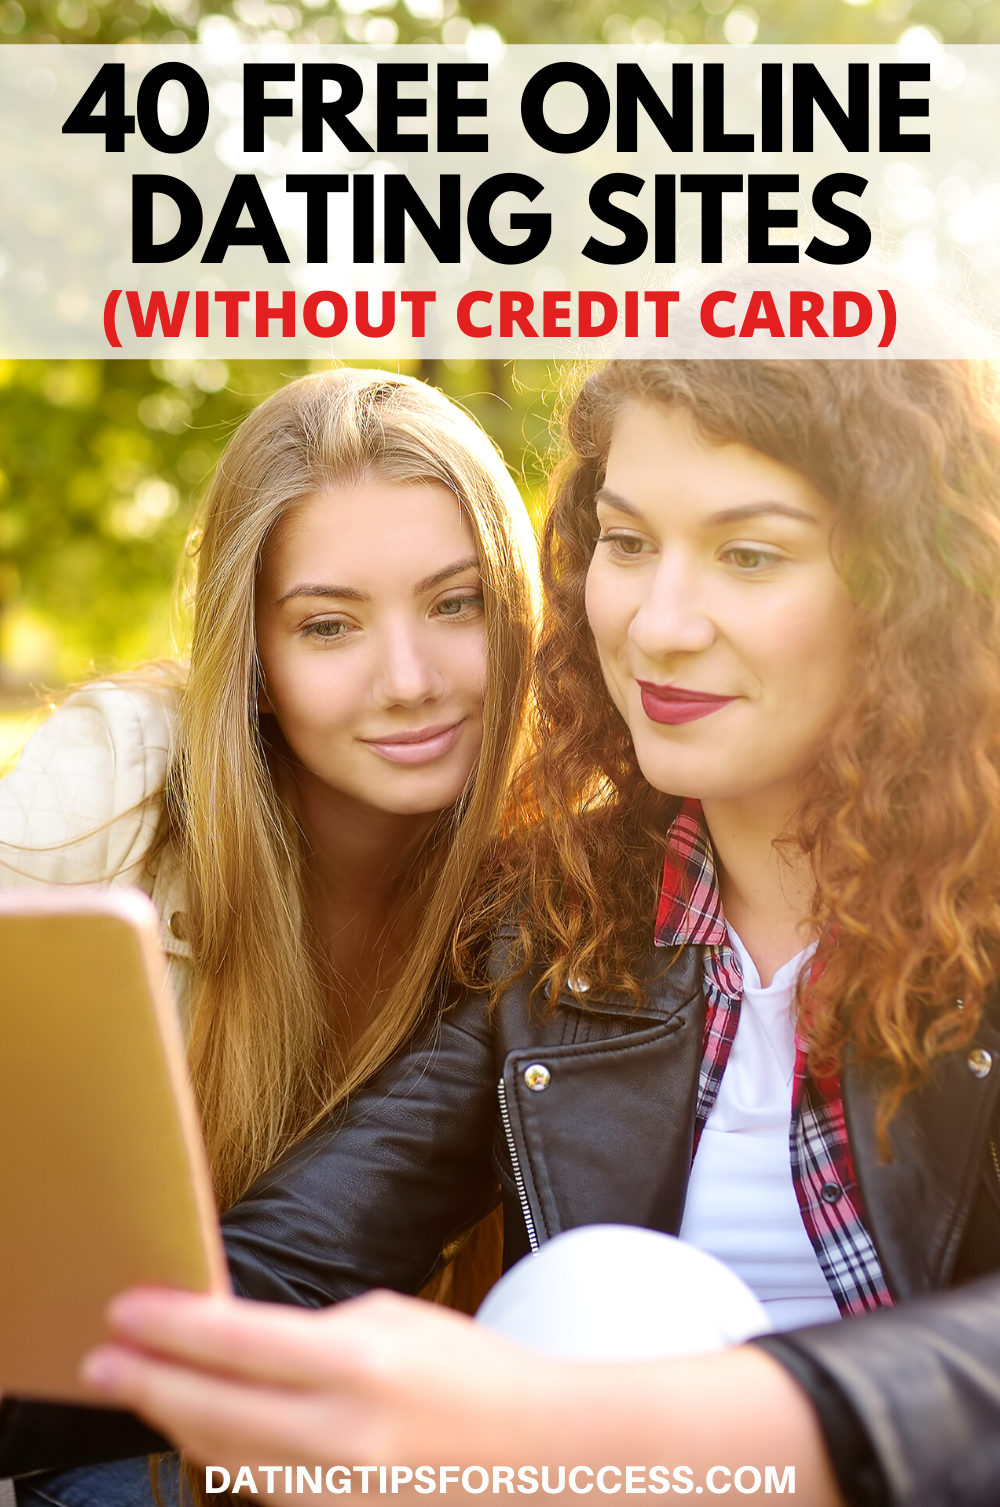 40 Free Online Dating Sites Without Credit Card in 2020